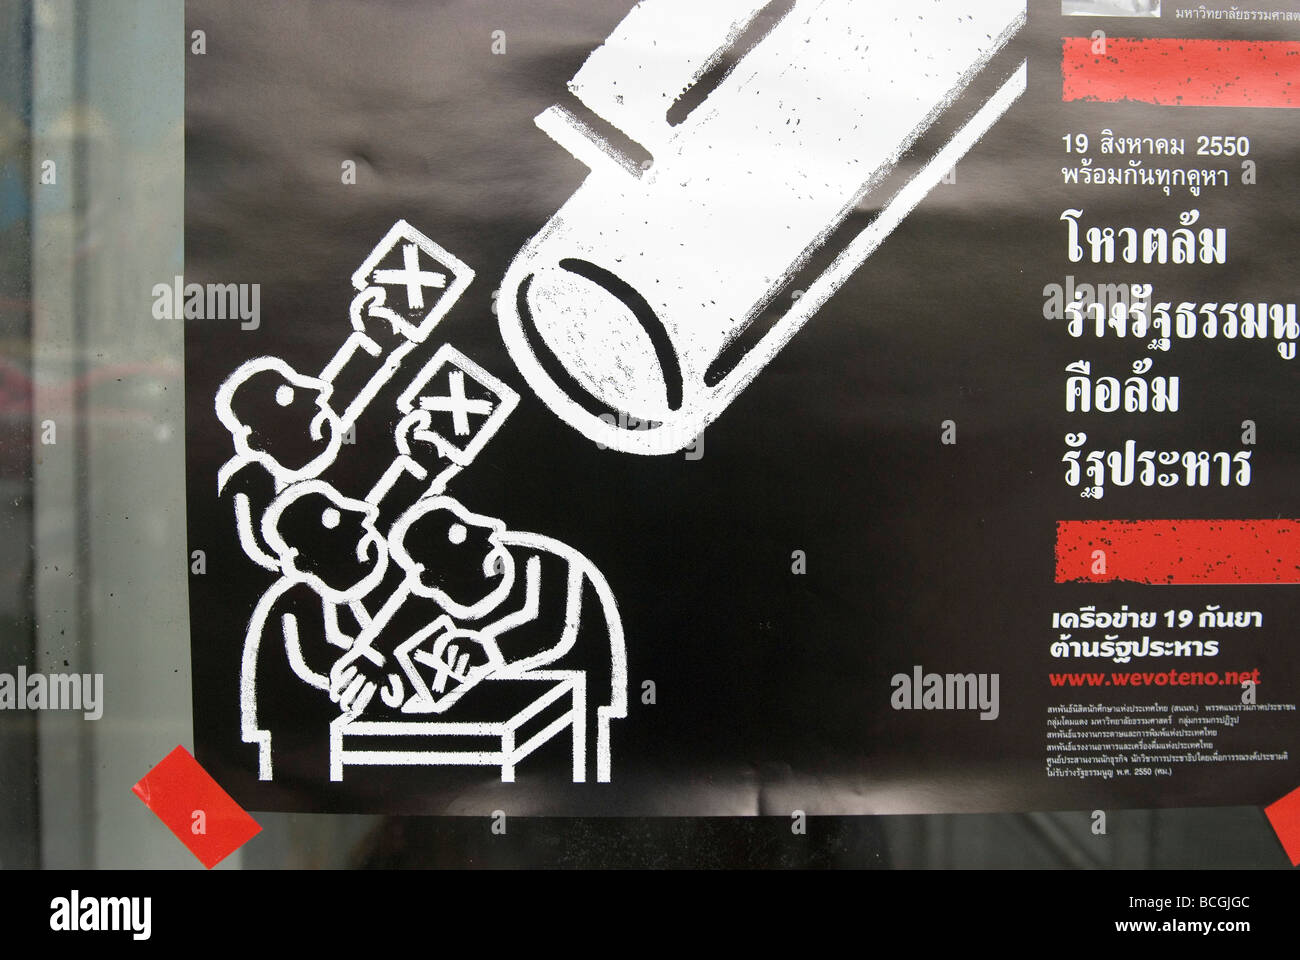 Election poster showing voters casting ballots under the barrell of a gun in Thailand - Stock Image